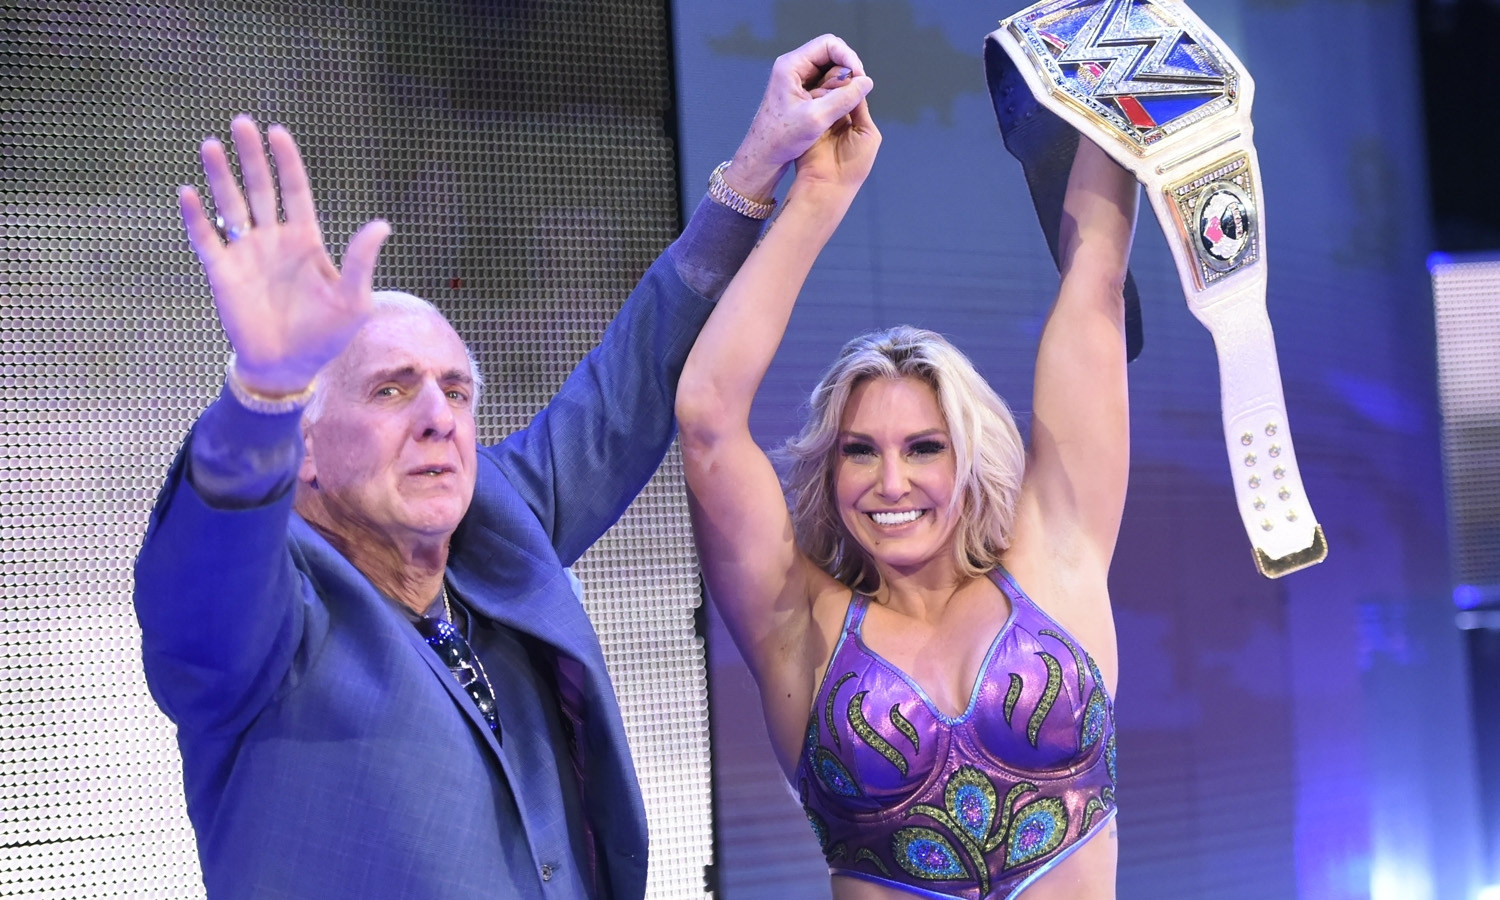 Charlotte Writes Letter to Father Ric Flair in The Players' Tribune Exclusive